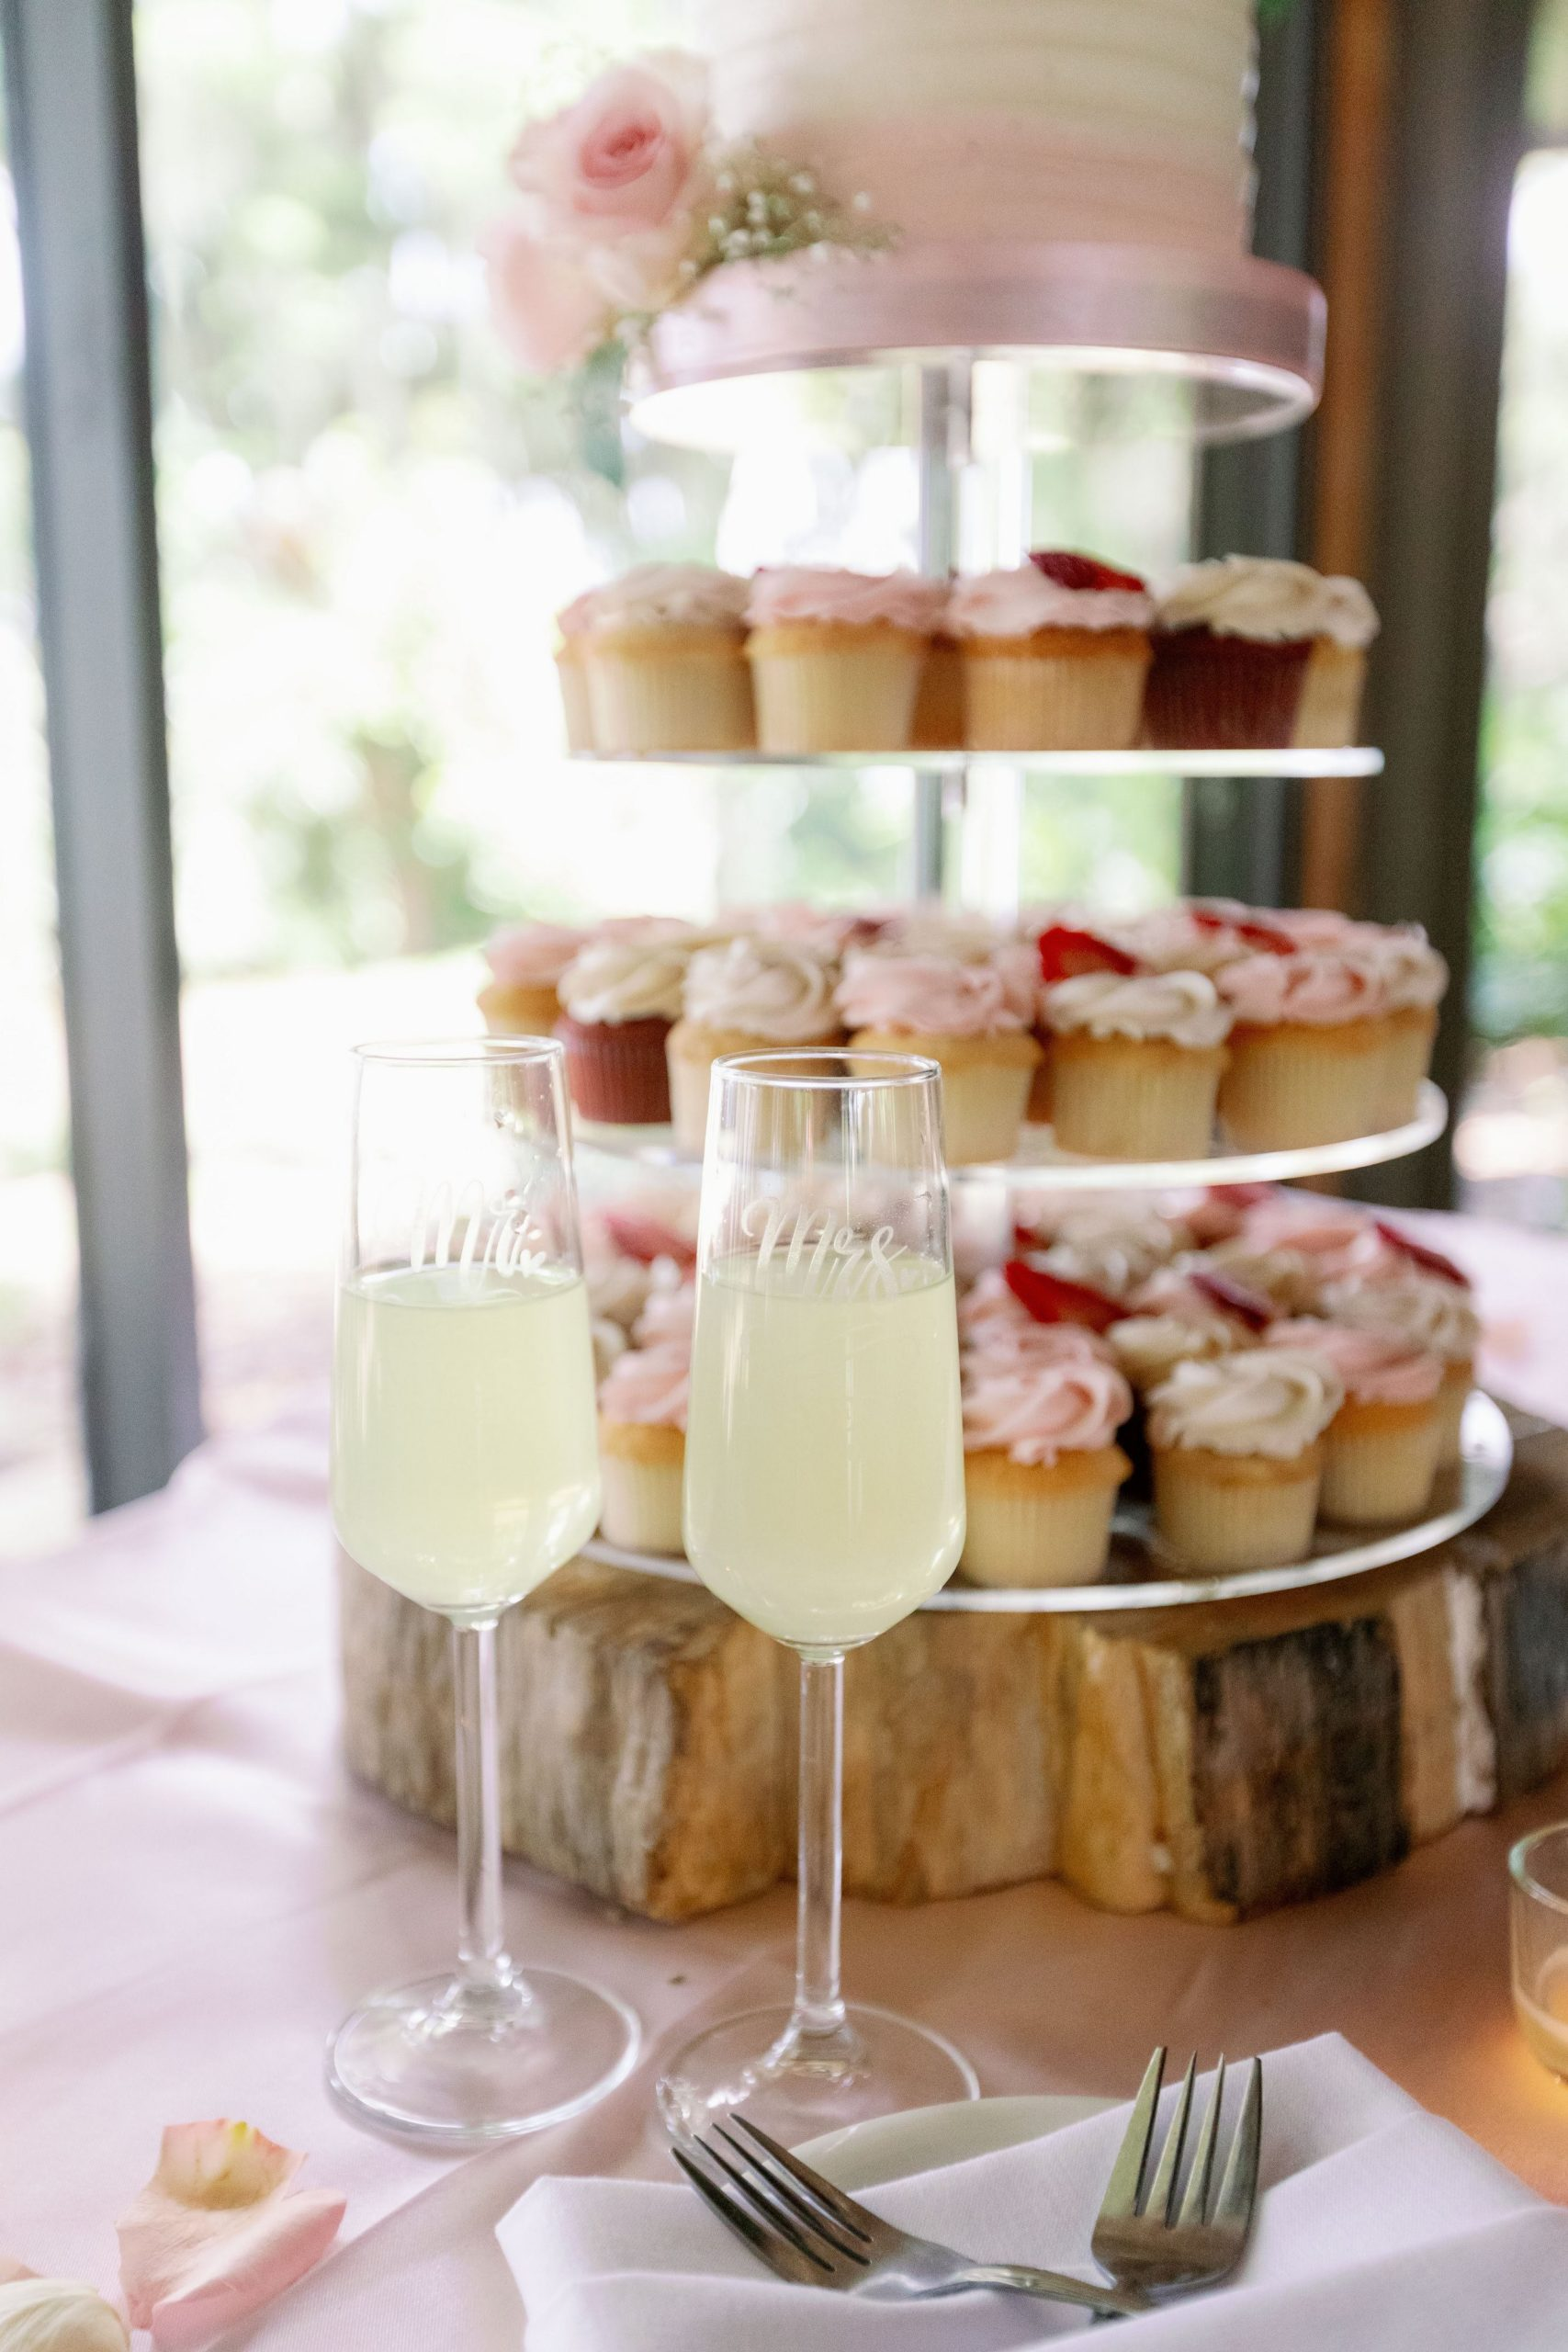 cupcake display with two glasses of mimosas